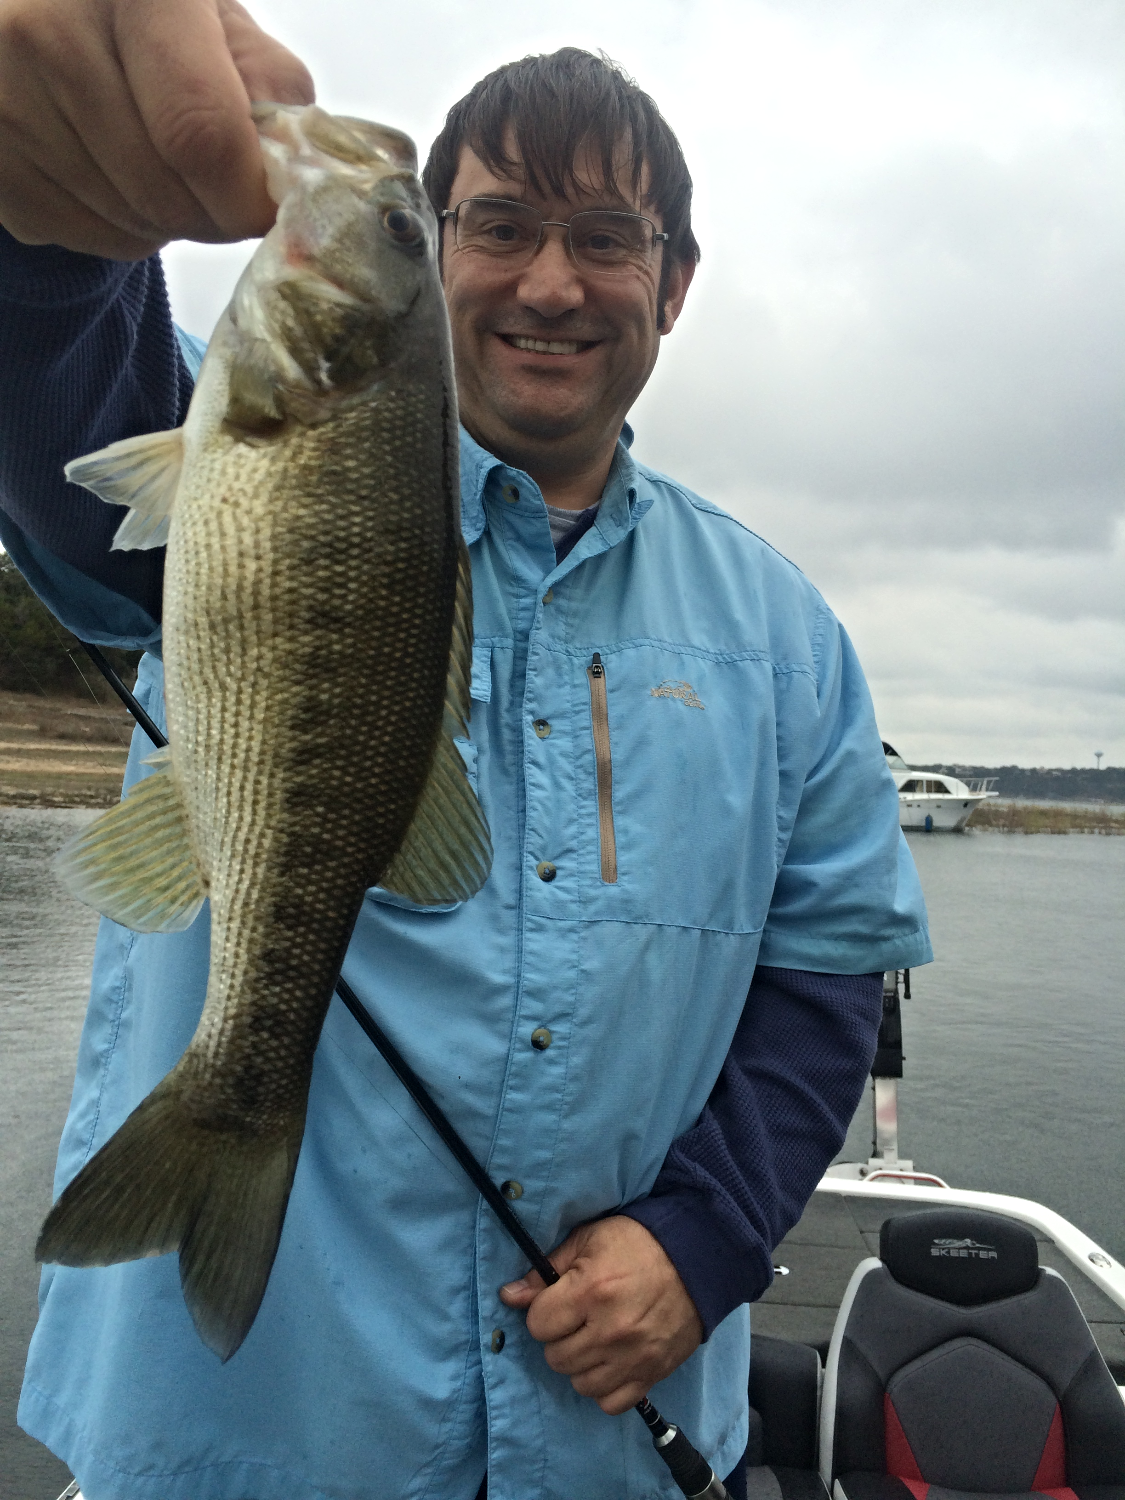 Lake_Travis_Fishing_16